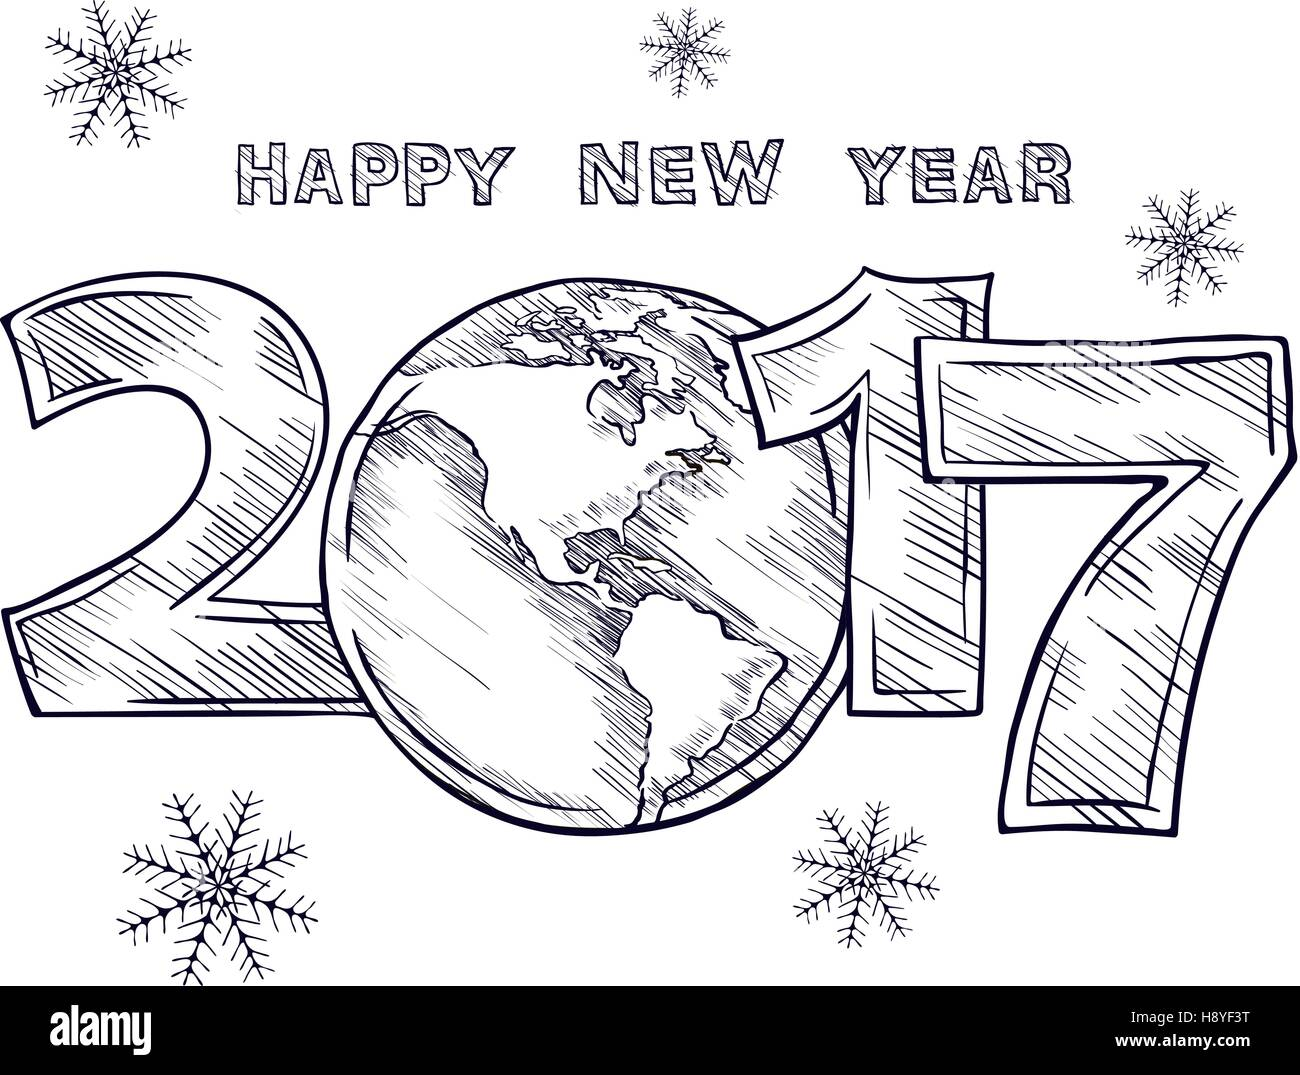 How to draw New Years drawings